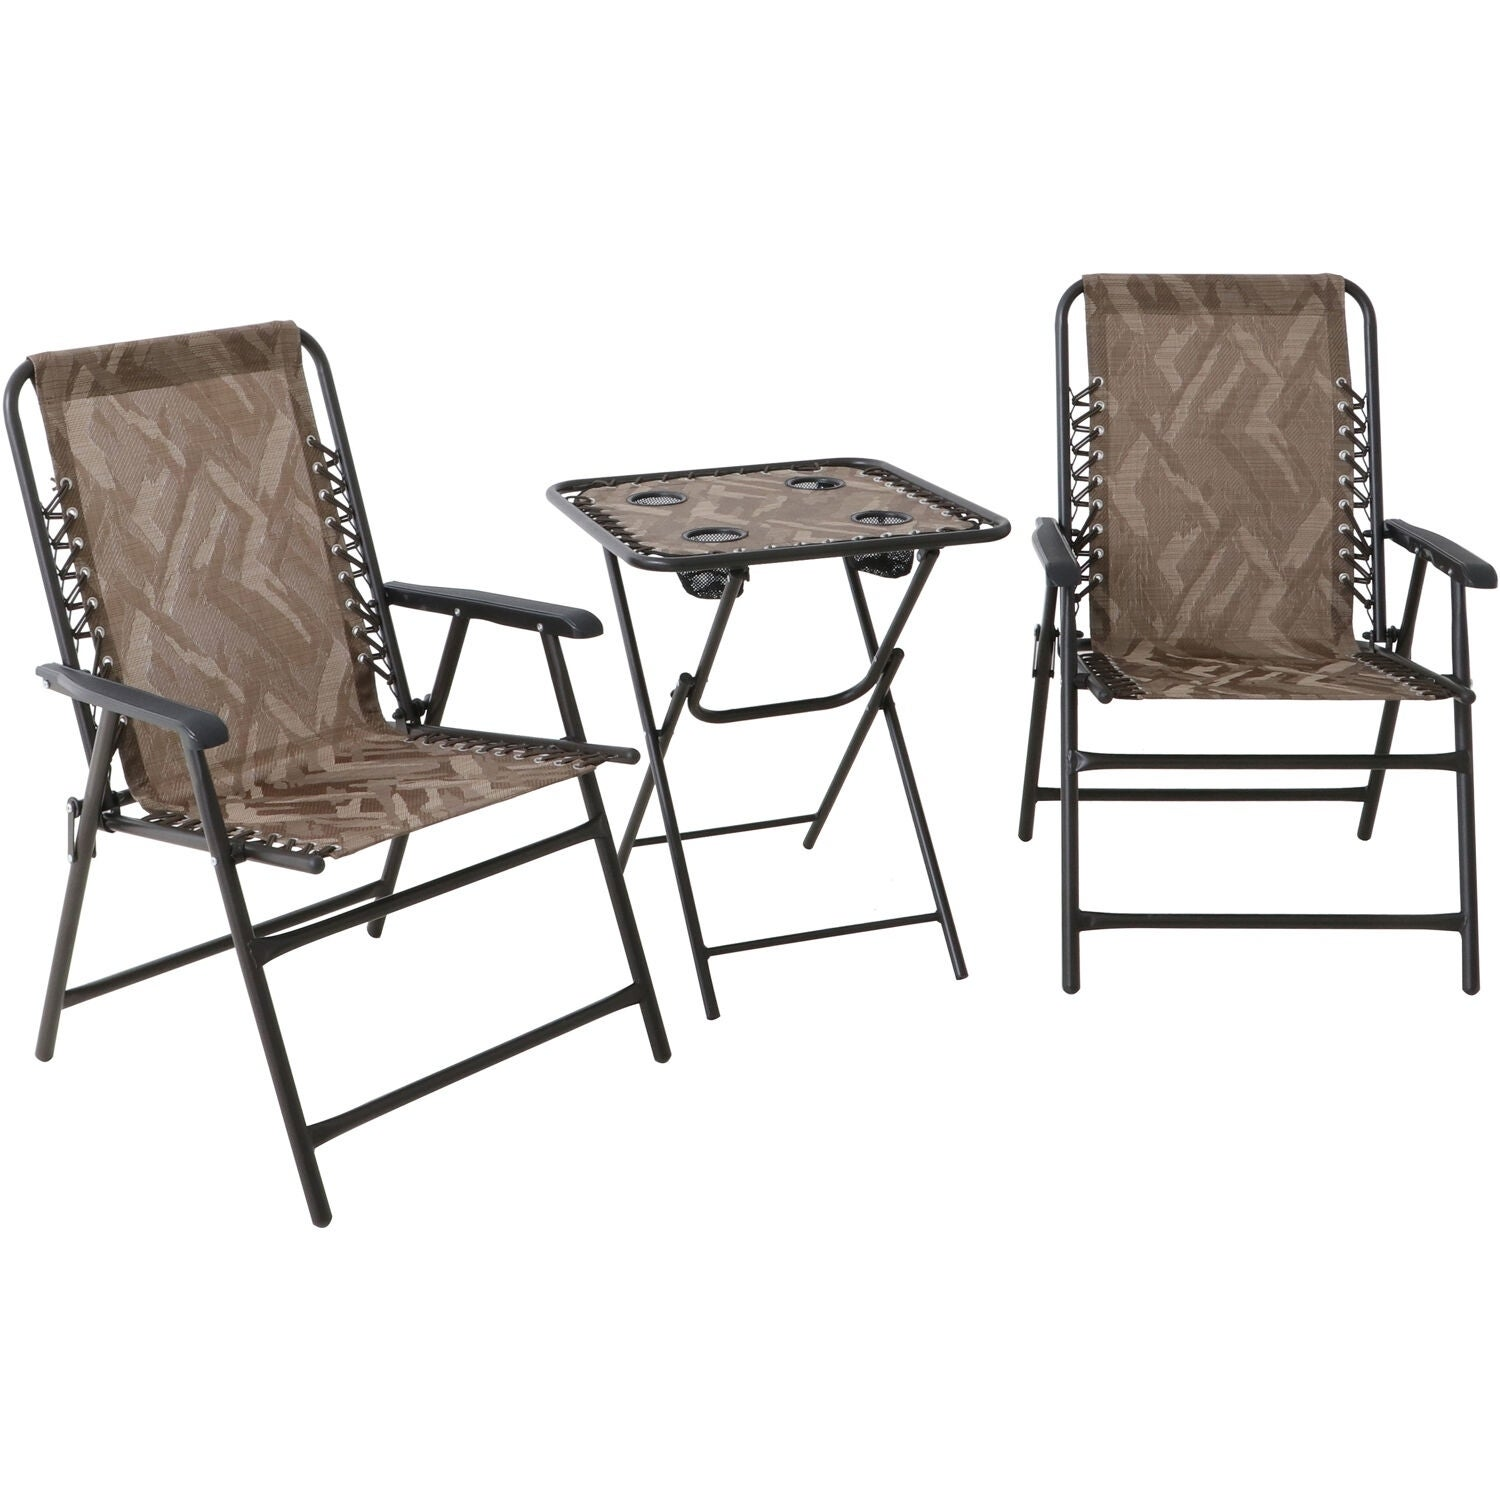 Hanover Elkhorn 3 Piece Portable Camo Seating Set Featuring 2 Folding Lawn Chairs And Folding Side Table